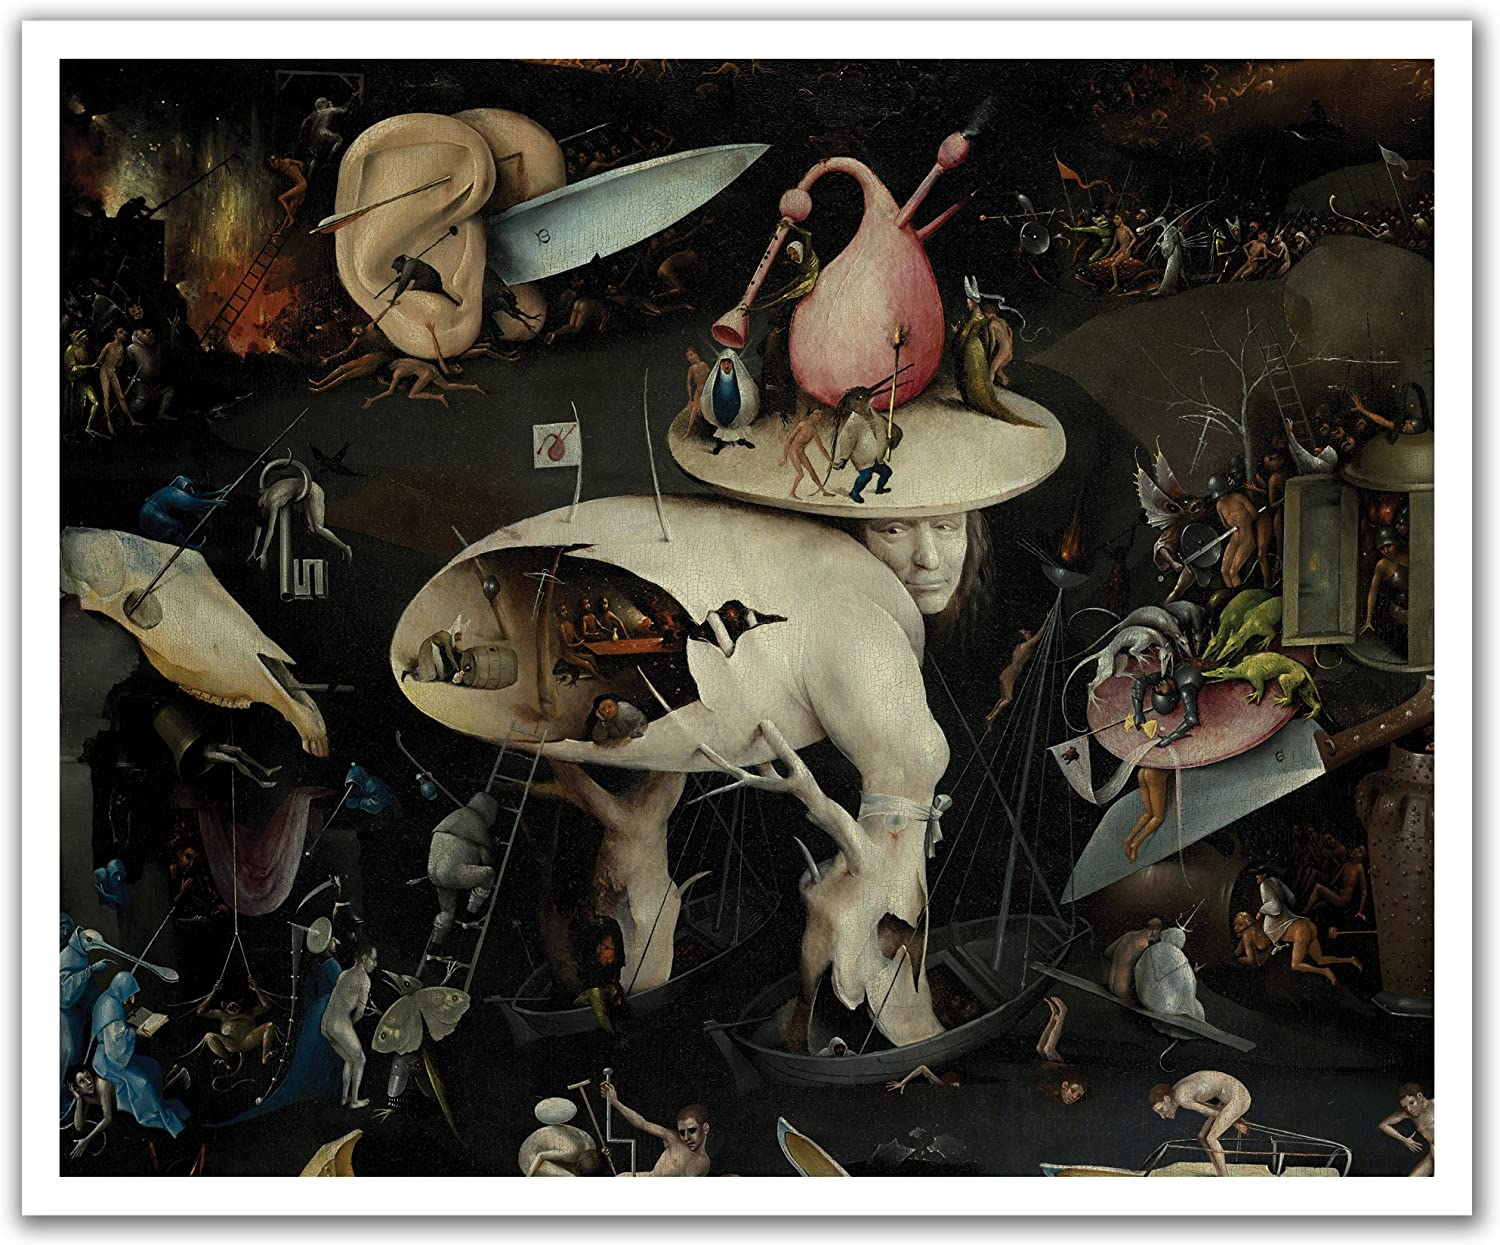 JP London POS2288 uStrip Bosch Peel and Stick Wall Decal Sticker Mural The Garden of Earthly Delights Painting, 24-Inch by 19.75-Inch